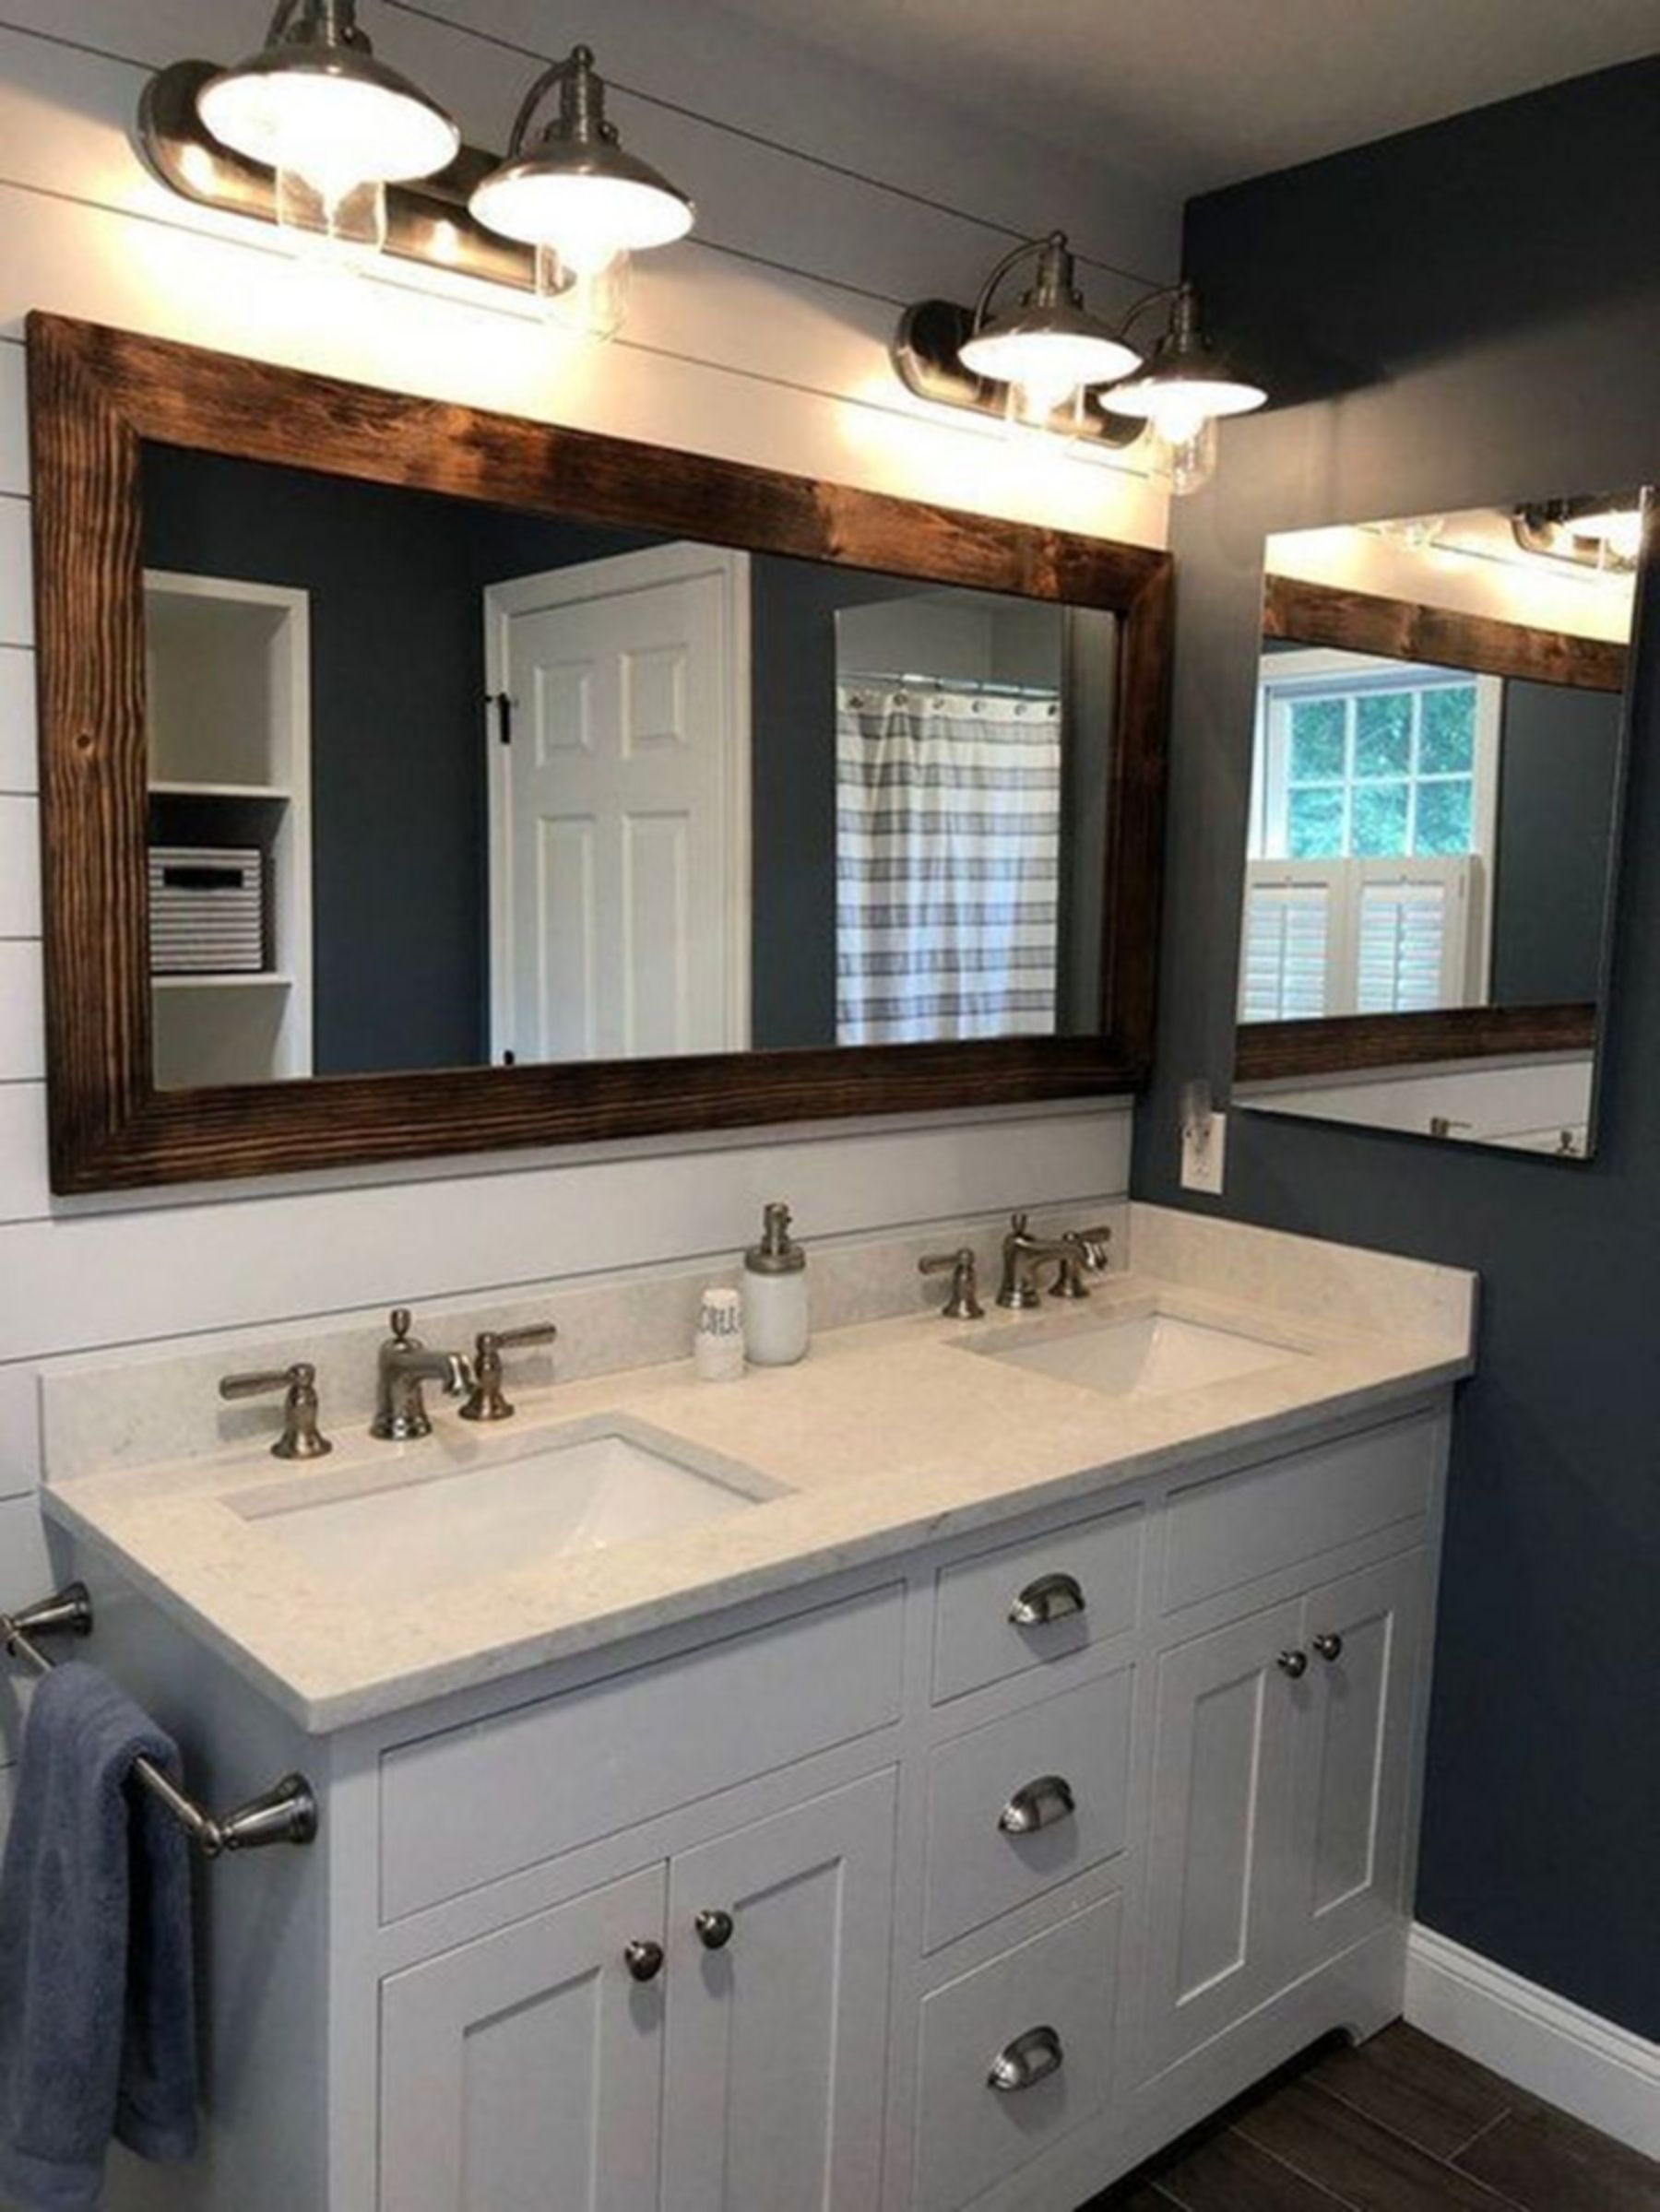 12 Astonishing Mirror Vanity Design Ideas For Your Bathroom Bathrooms Remodel Reclaimed Wood Mirror Bathroom Remodel Master